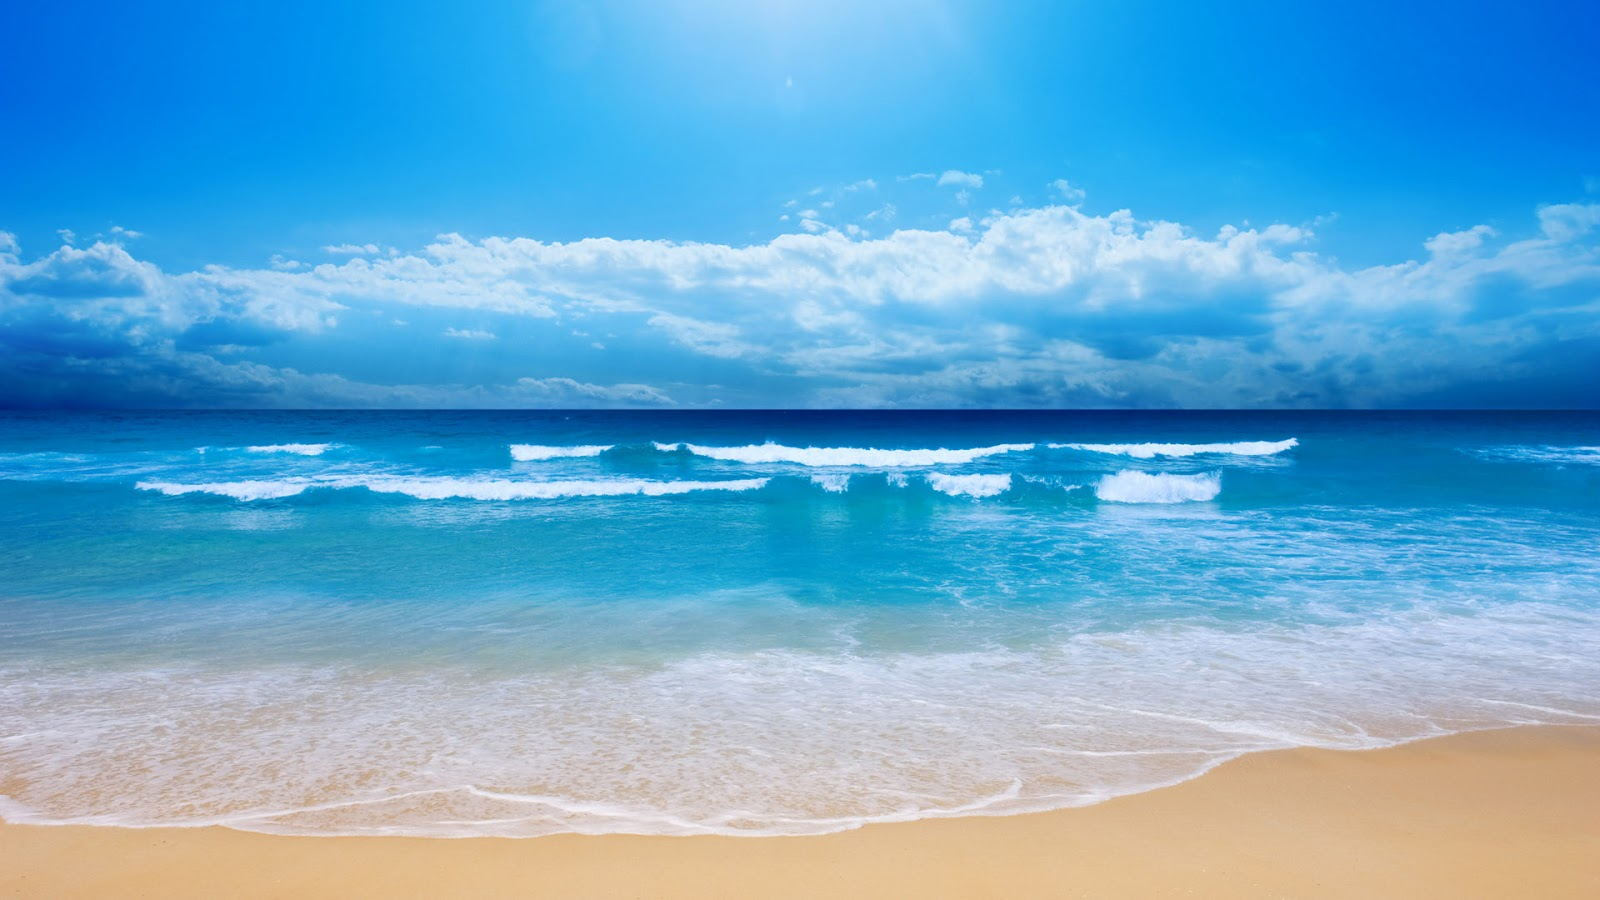 Ocean Waves Wallpaper s Powerful big waves in the blue ocean showing 1600x900